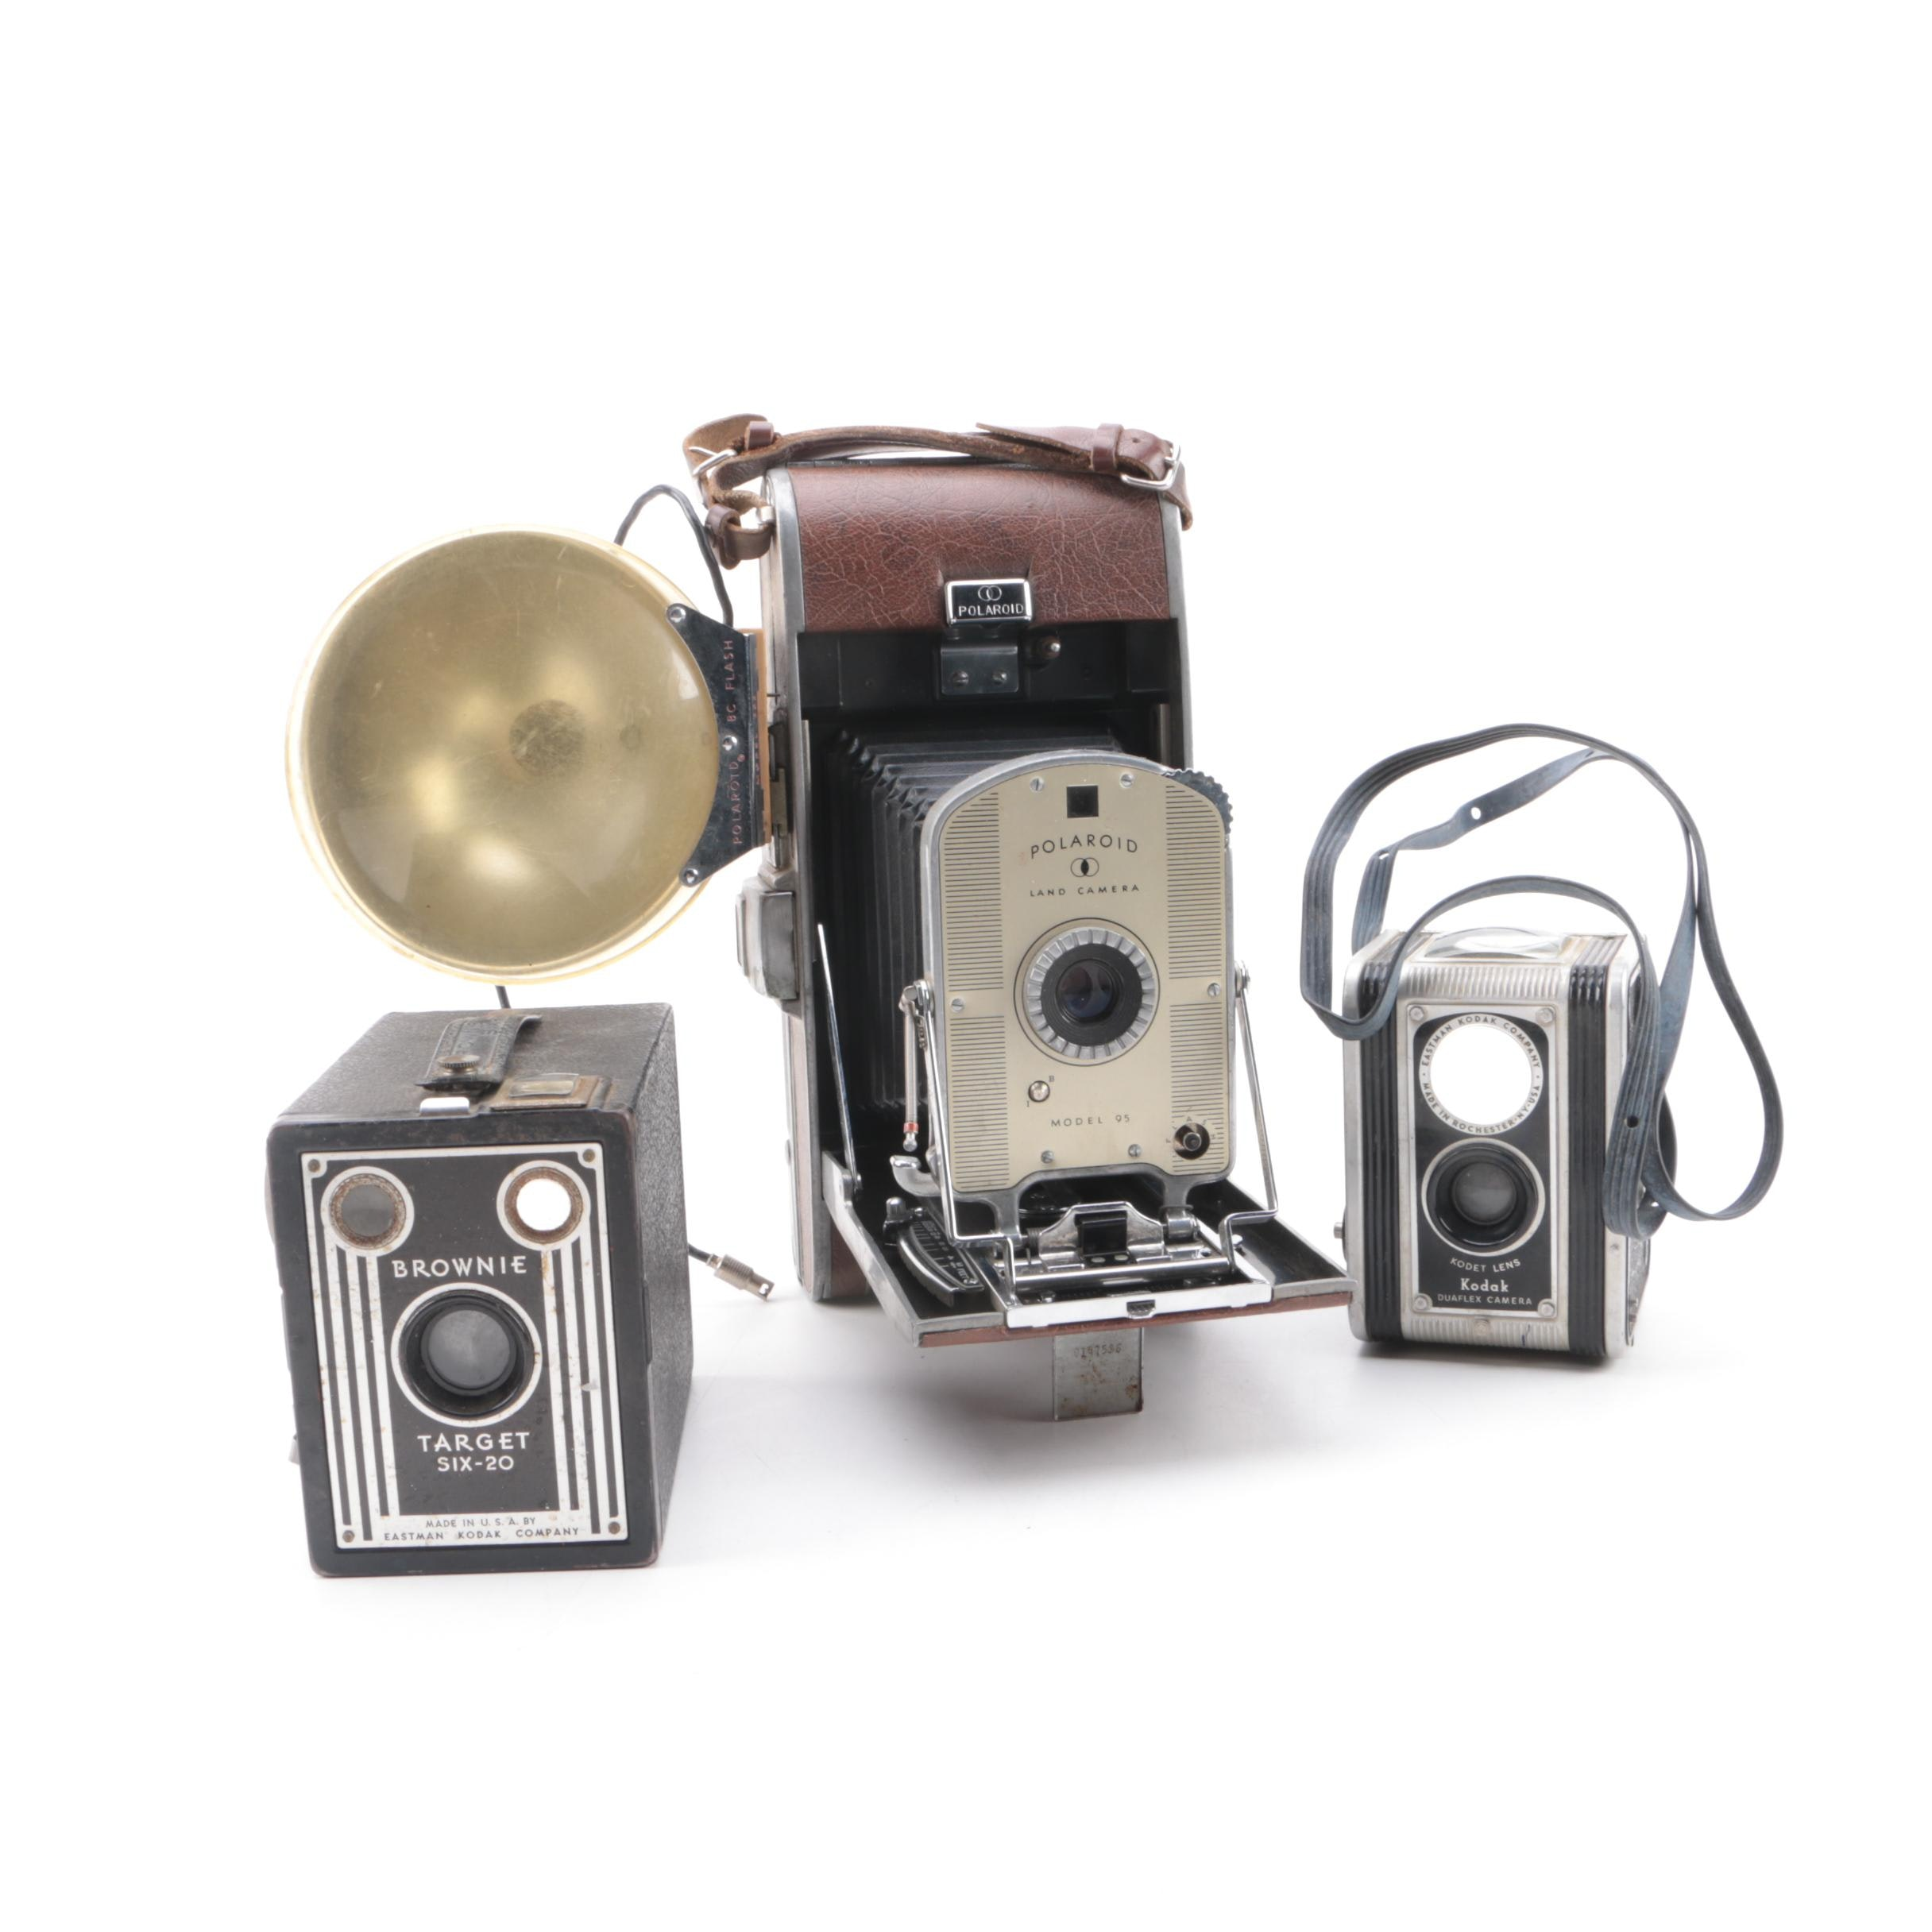 Vintage Polaroid Model 95 Land Camera with Kodak Box and TLR Cameras